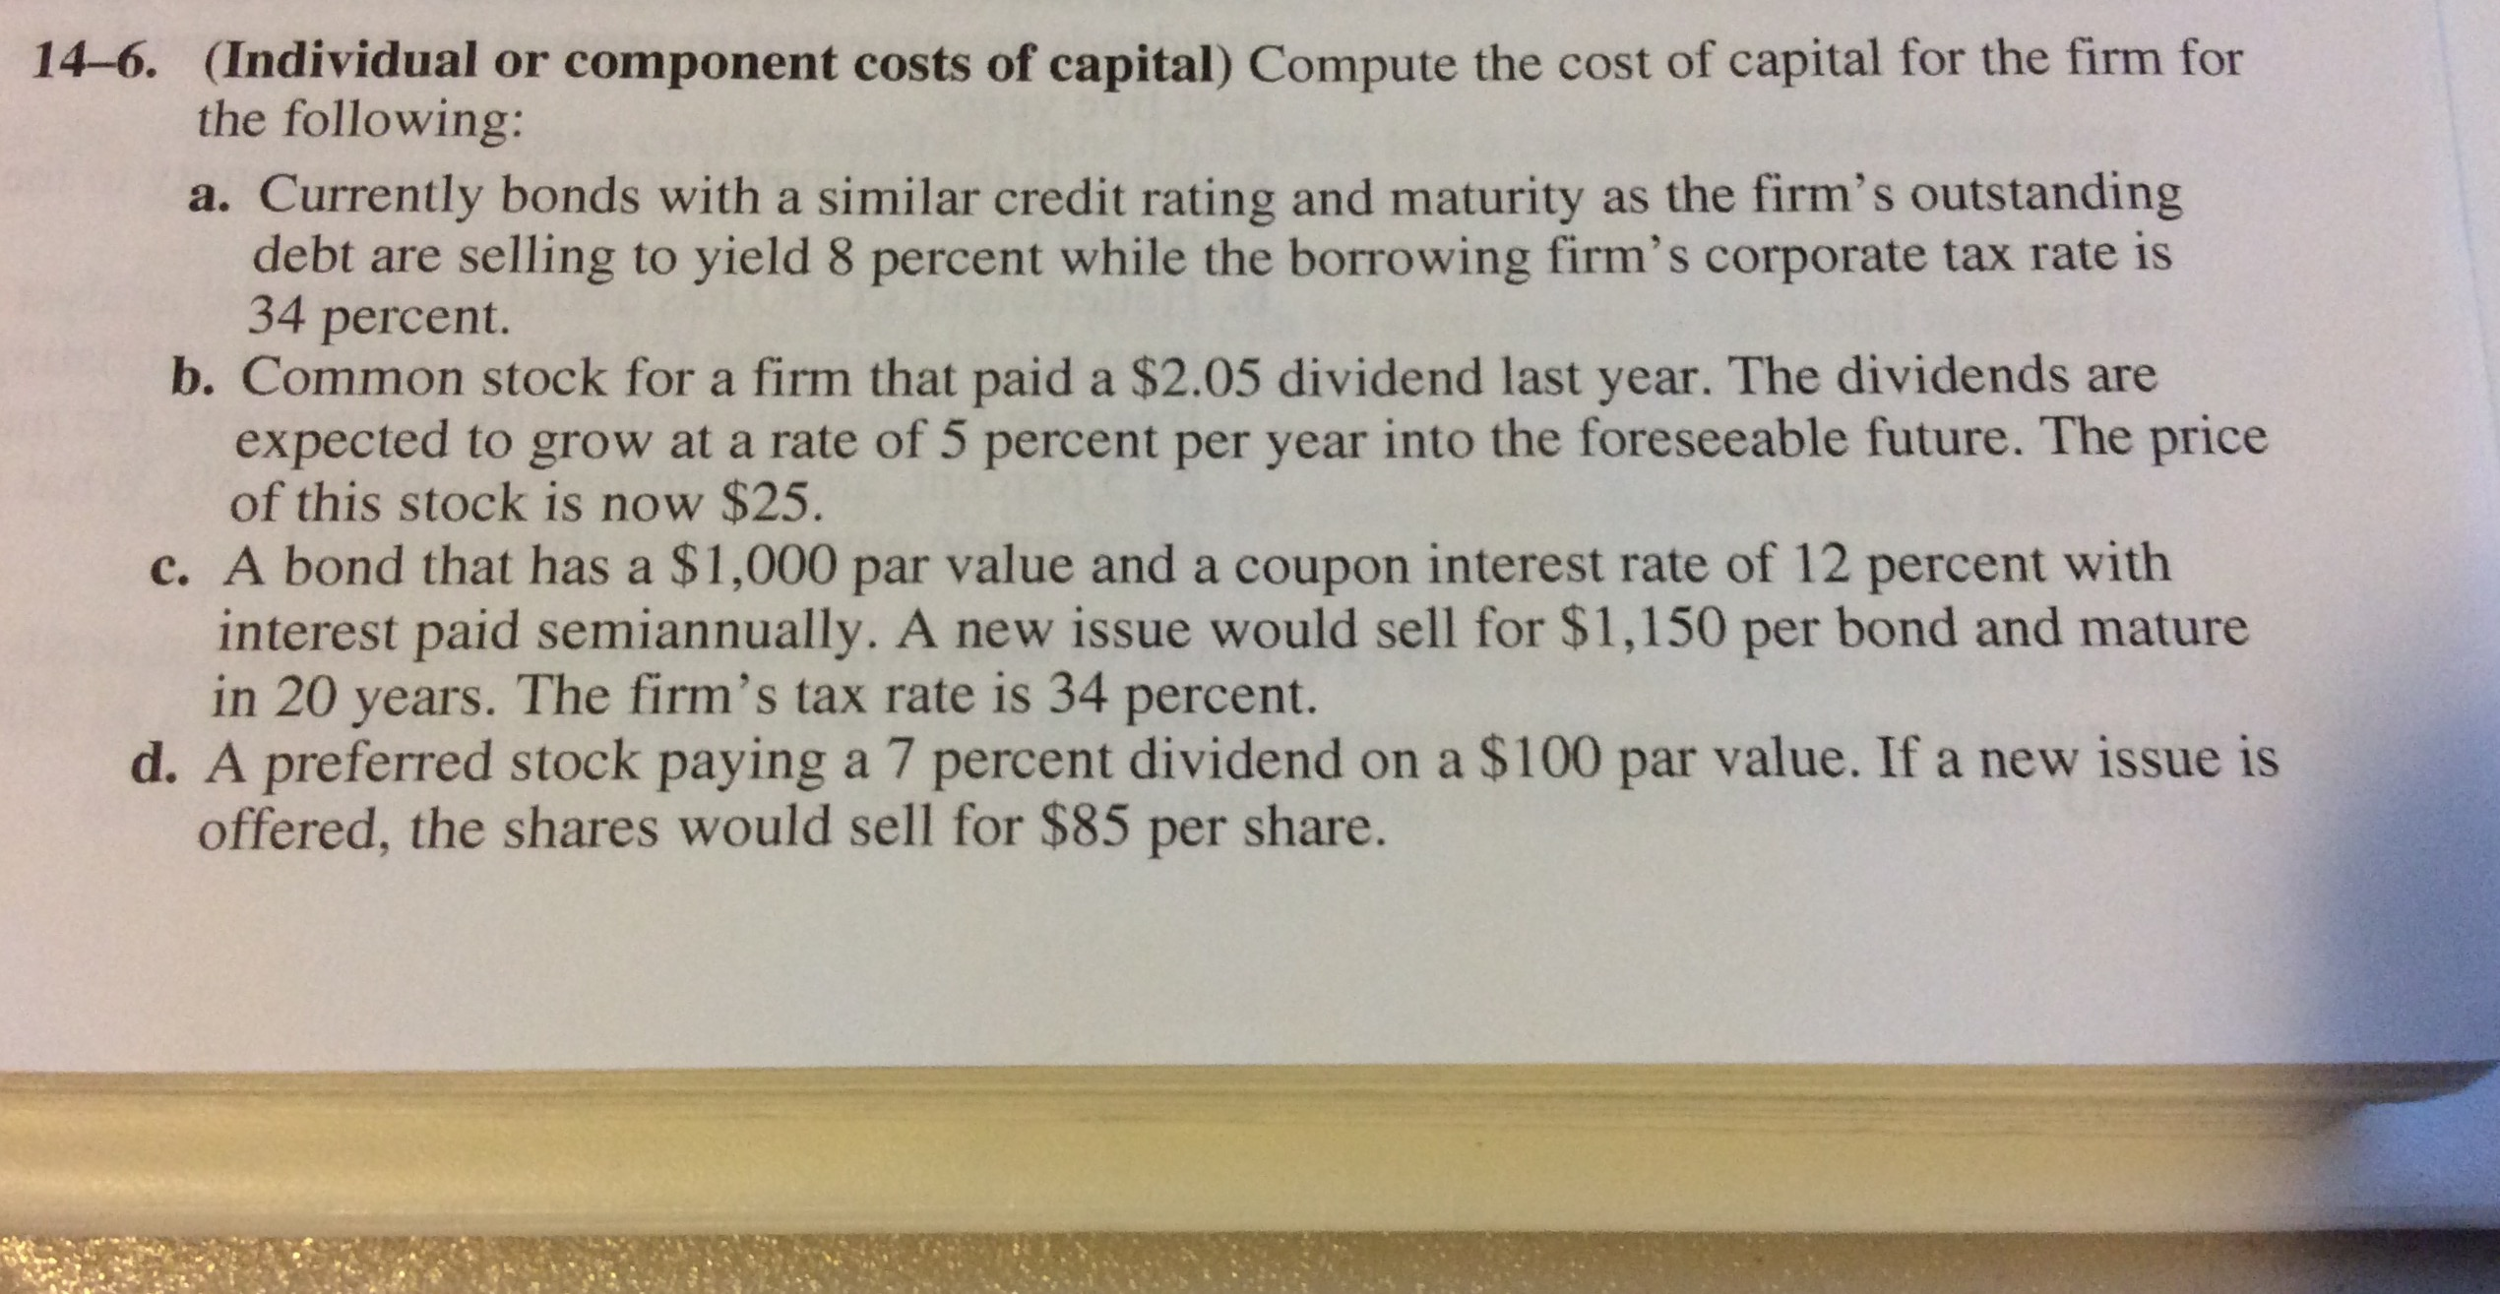 cost of capital for hubbard computer Computing a company's cost of capital is not as simple as using, for example, the rate of interest it is charged on bank financing the true cost of capital must be determined considering economic, market, and tax issues sometimes investor relations and market perception play a role in determining a.